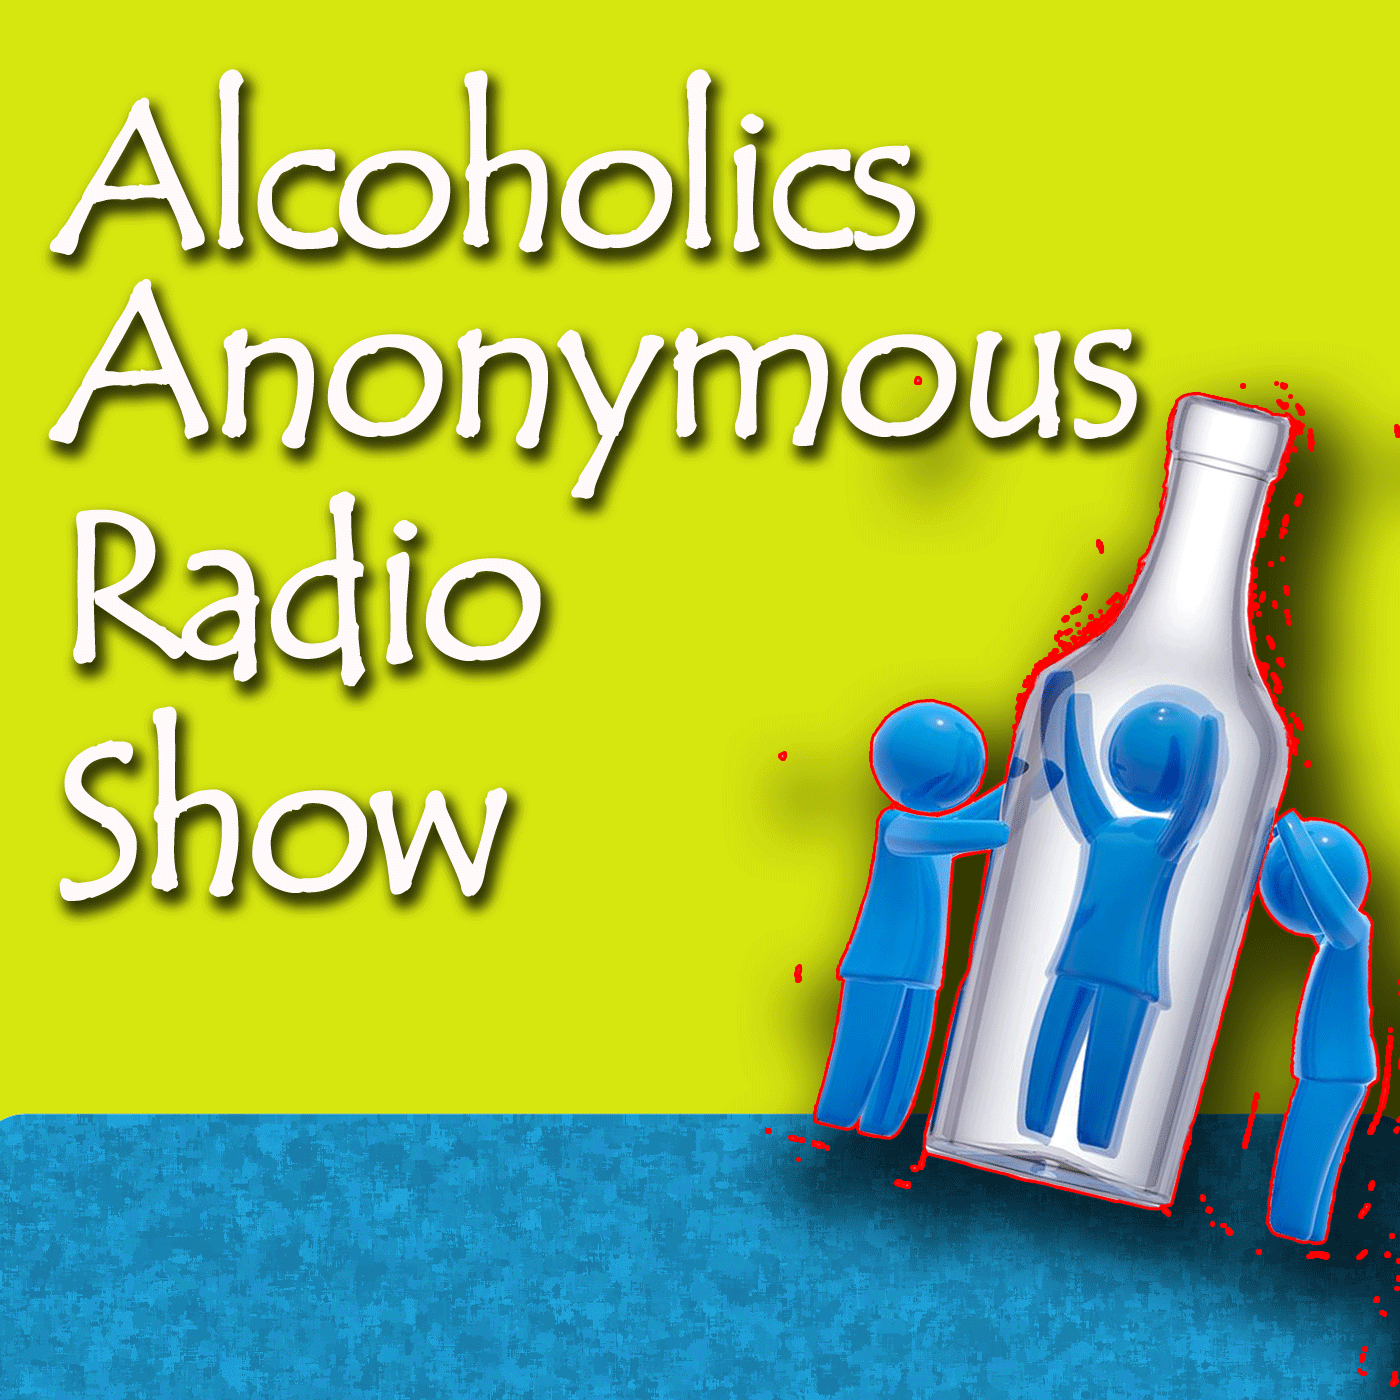 Alcoholics Anonymous Radio Show - Maree 20 years sober